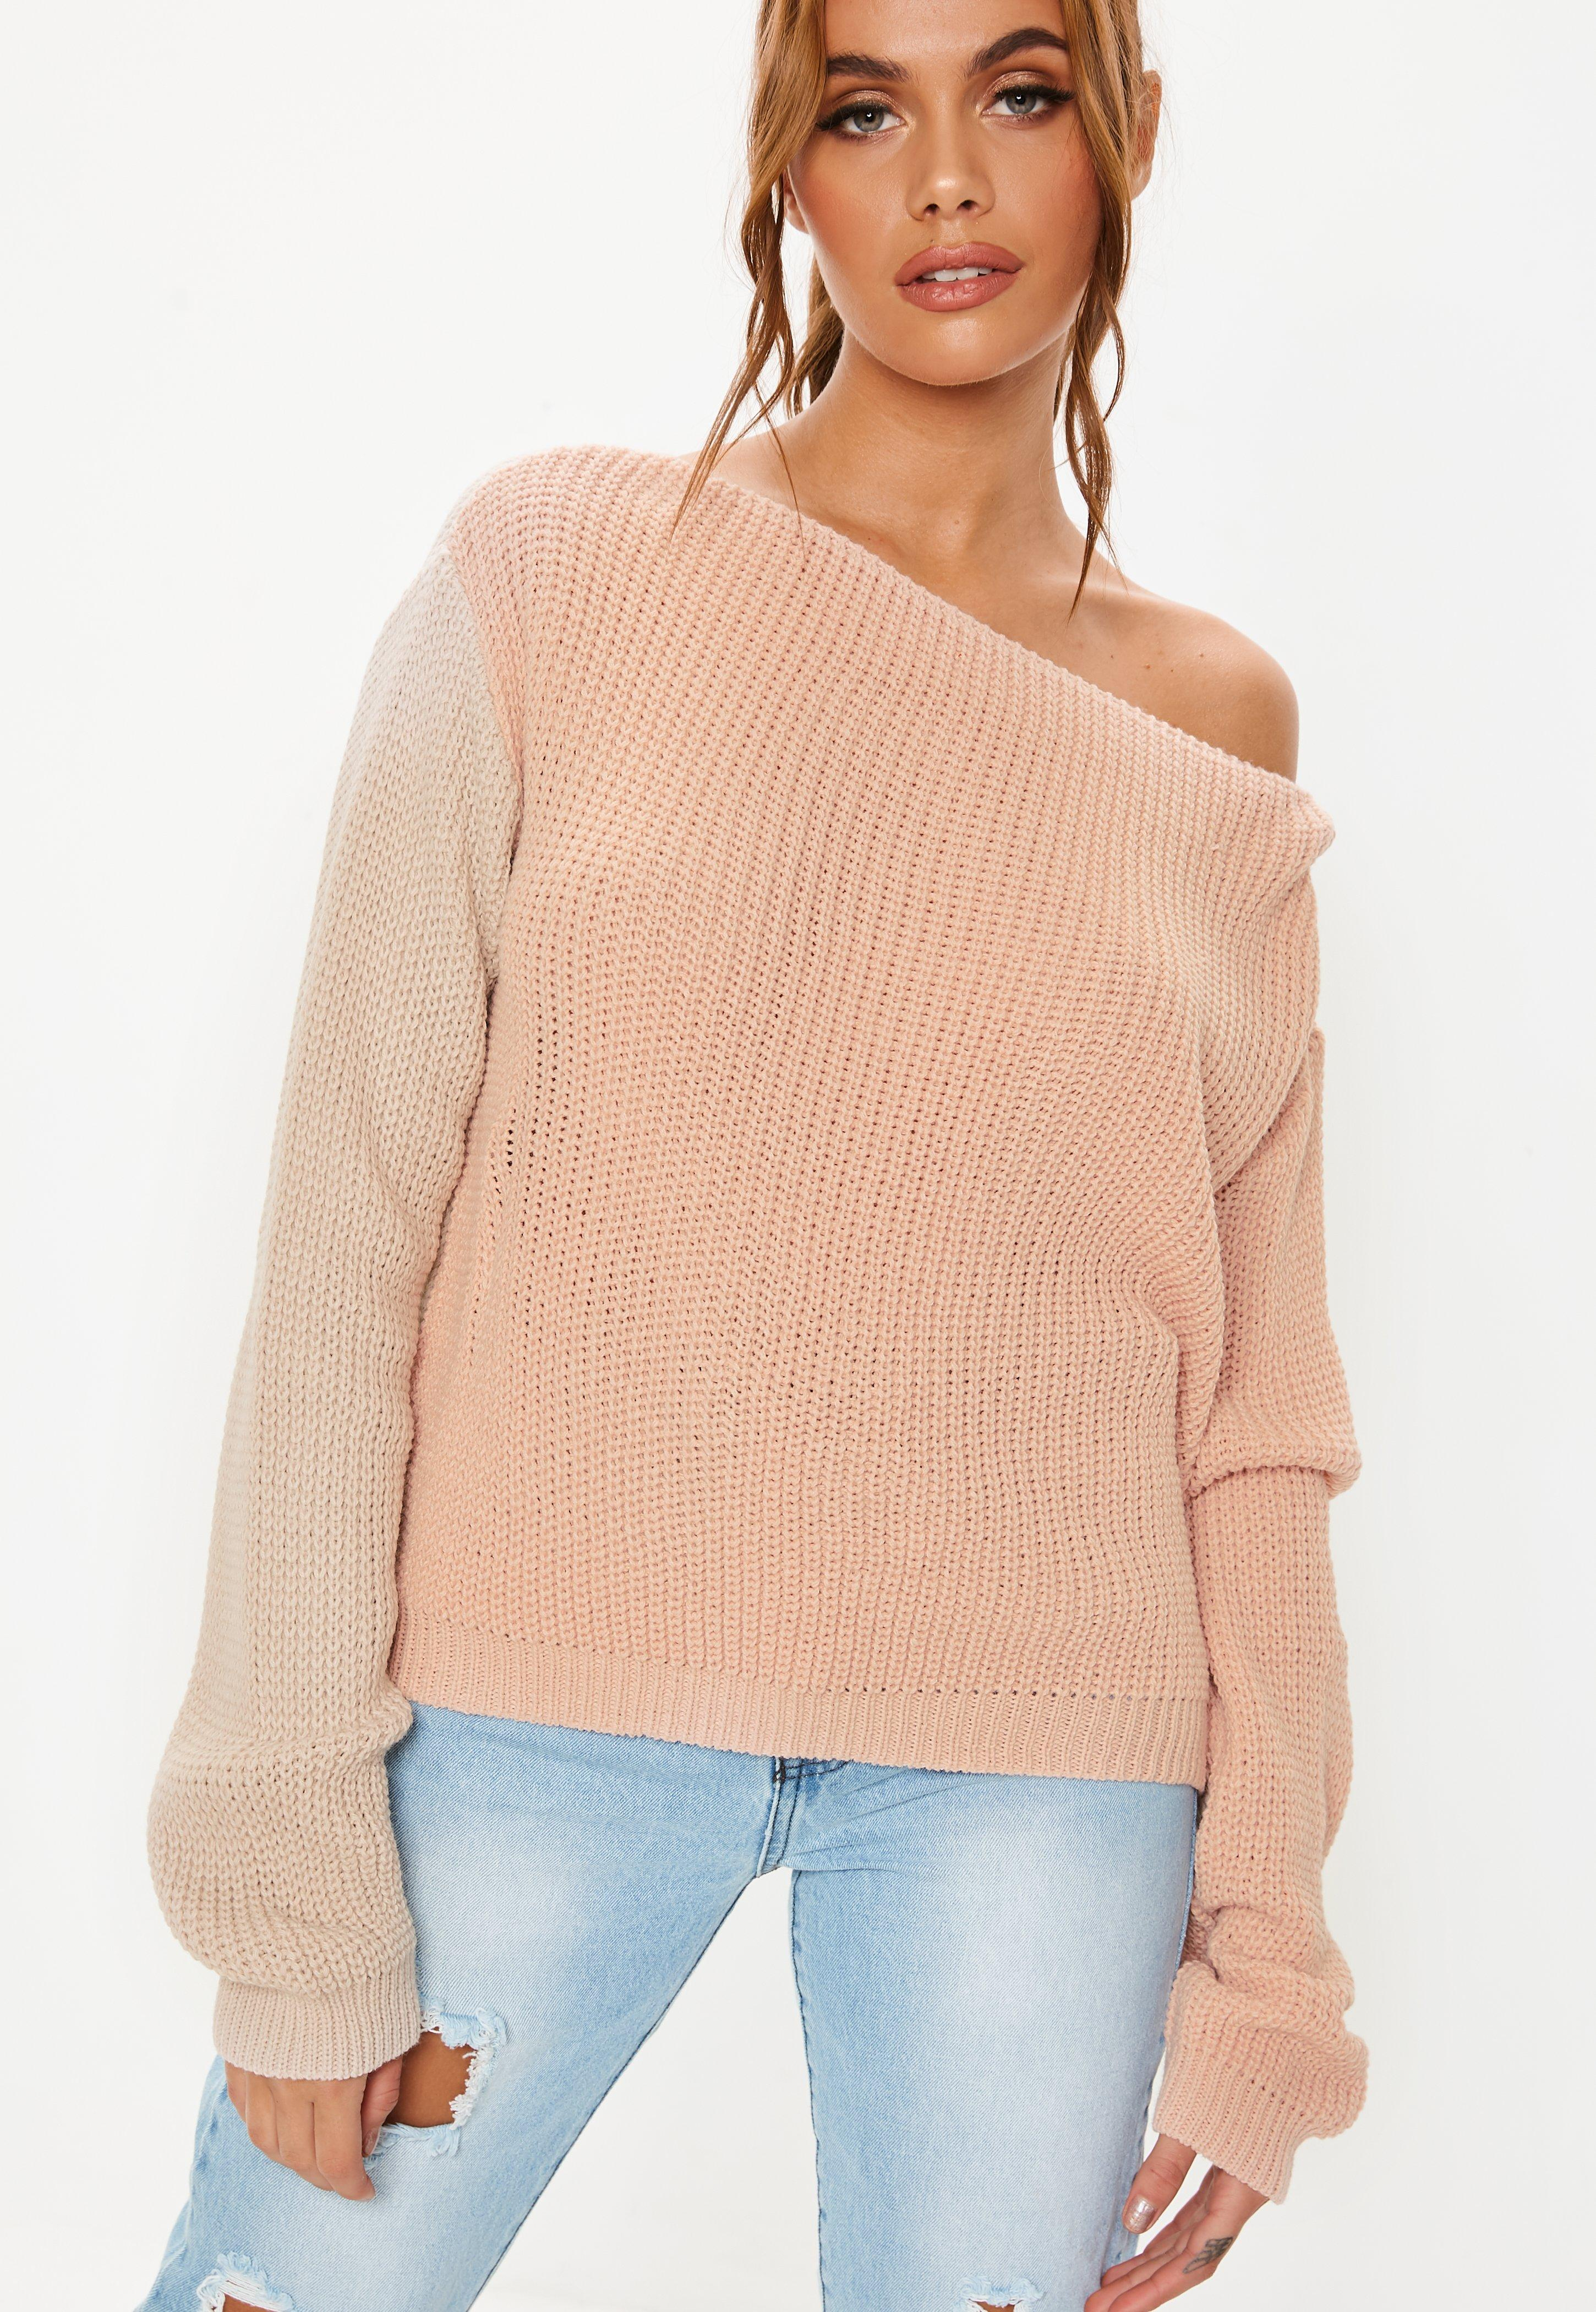 Something Nudes in fuzzy sweaters simply matchless